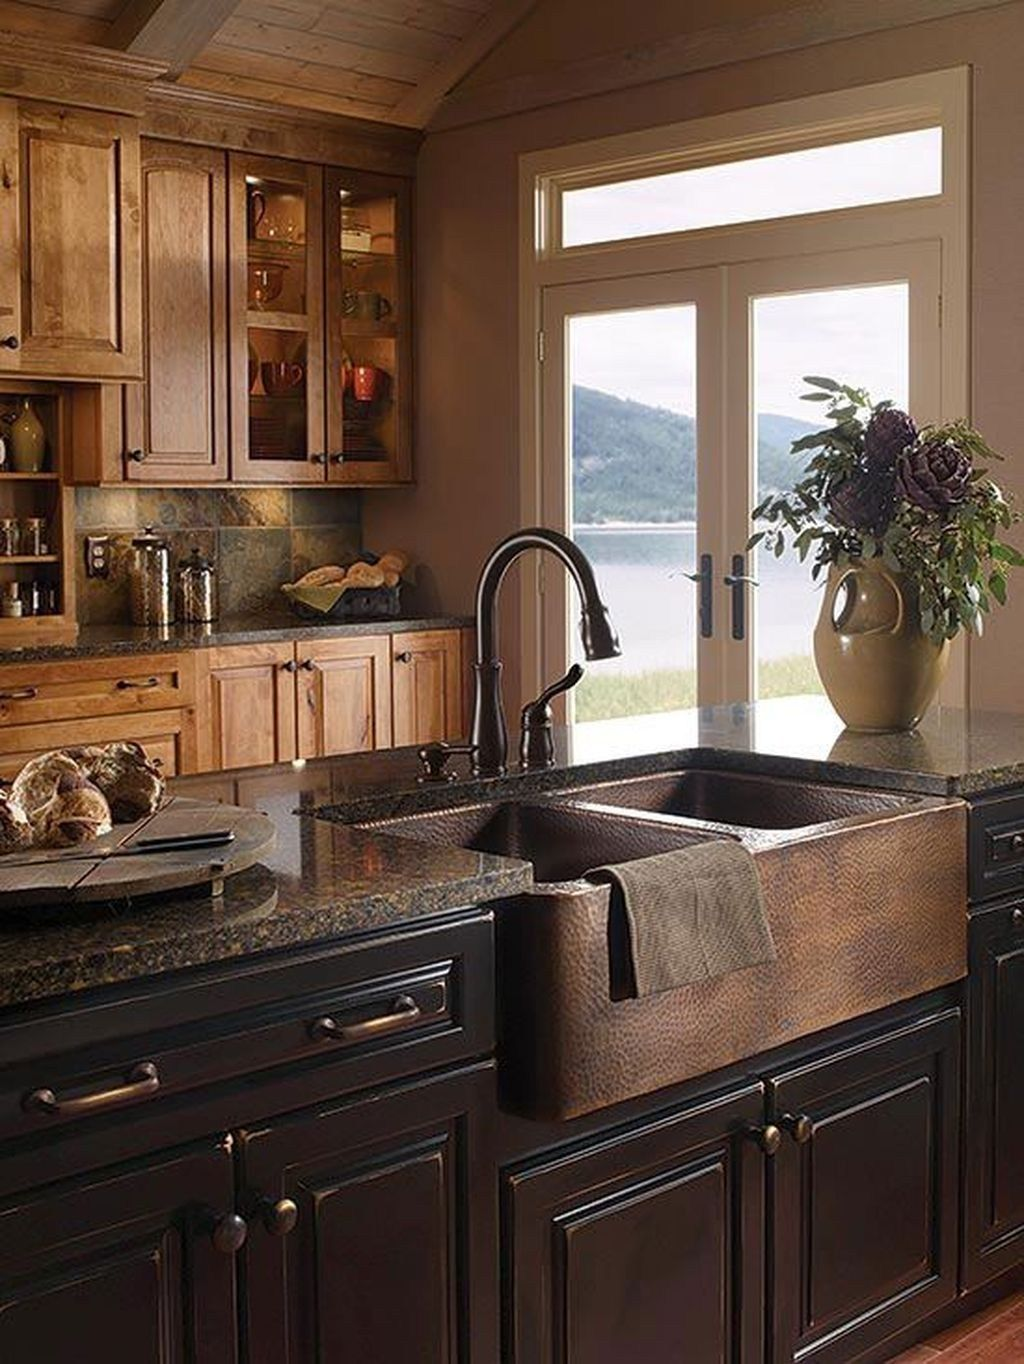 32 Stunning Rustic Kitchen Cabinets Ideas Rustic Kitchen Design Rustic Kitchen Cabinets Farmhouse Sink Kitchen